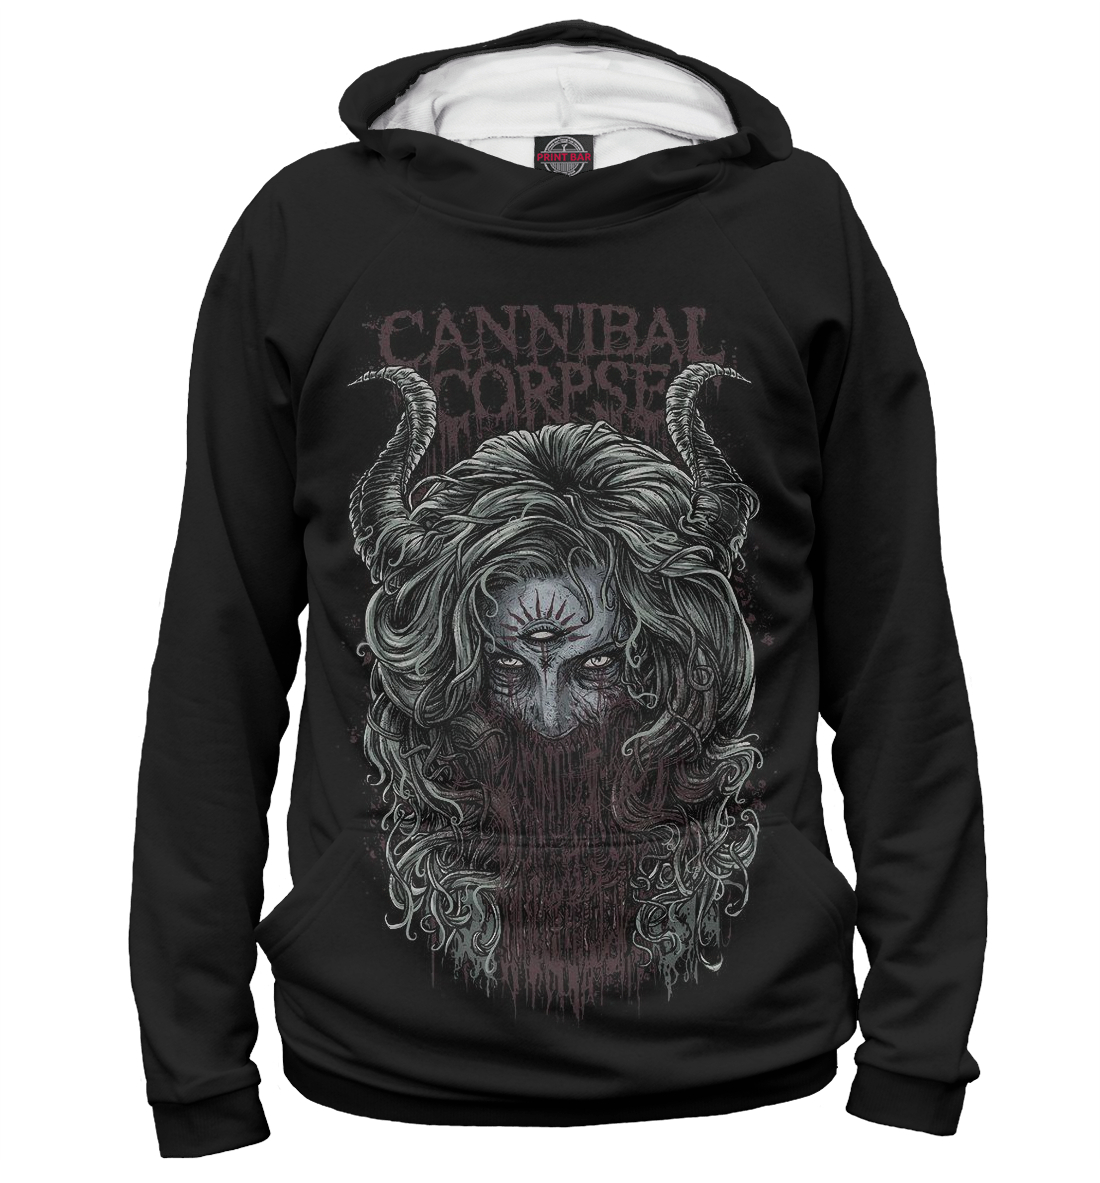 Купить Cannibal Corpse, Printbar, Худи, MZK-566568-hud-2